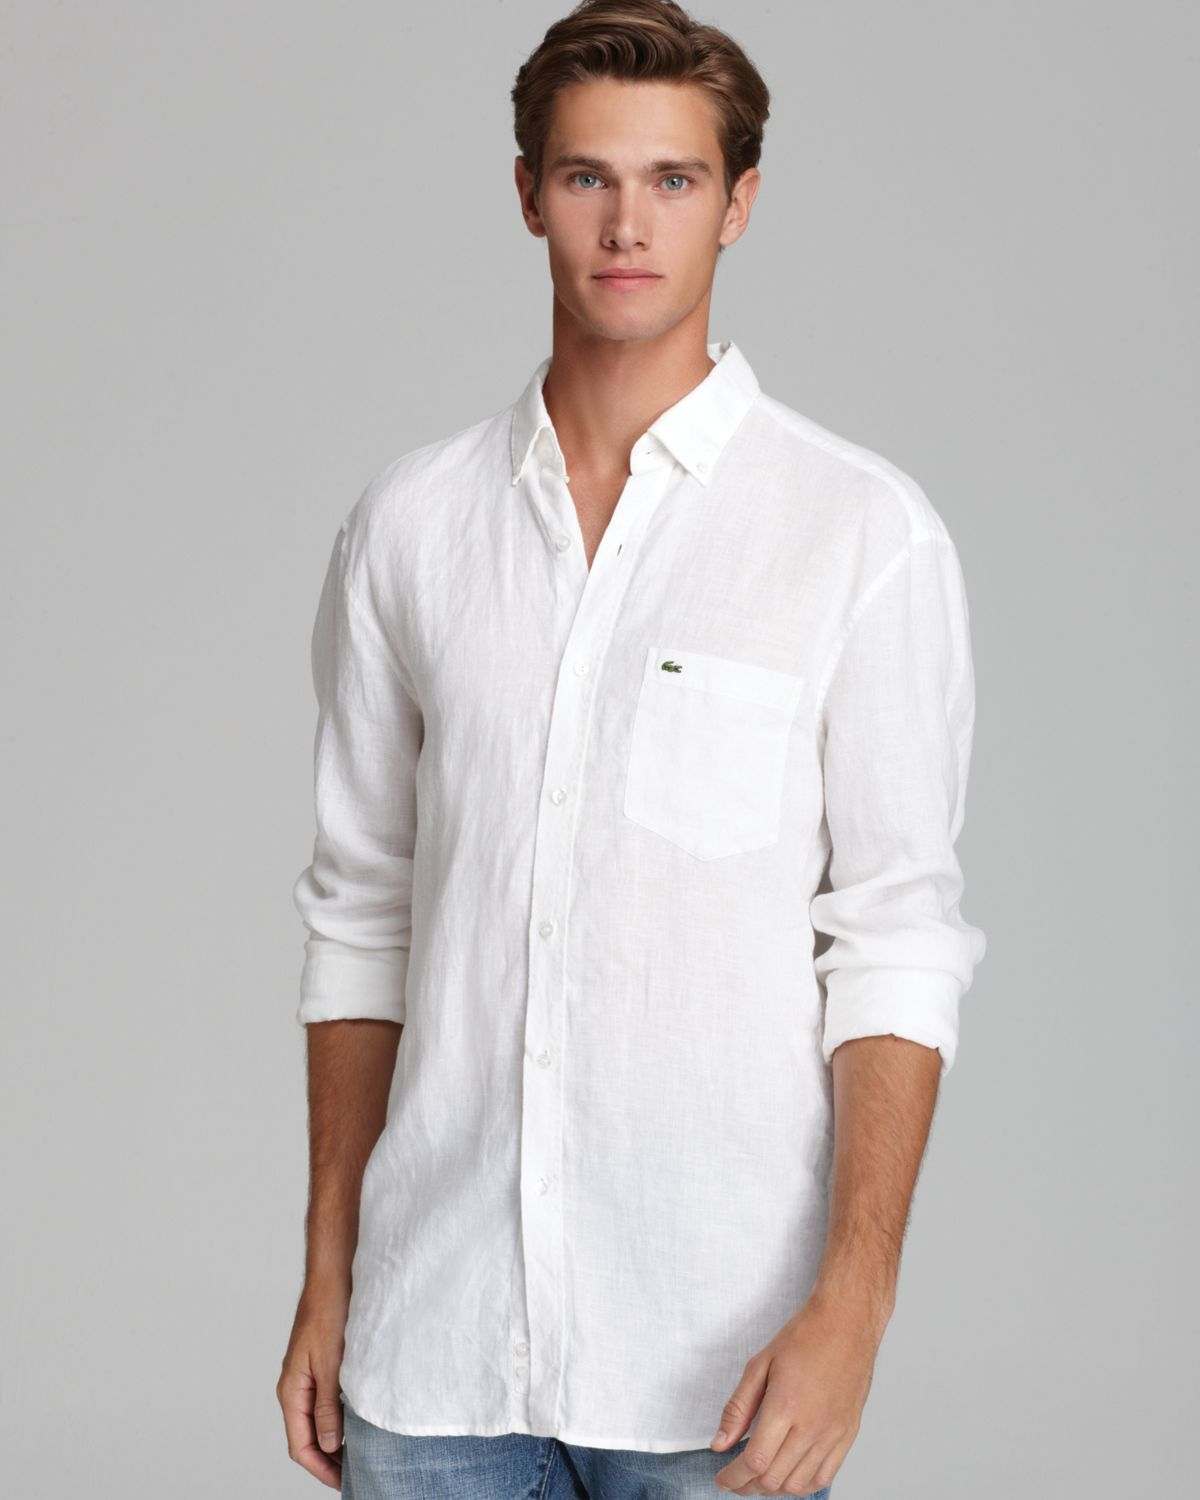 Armani White Shirt Mens